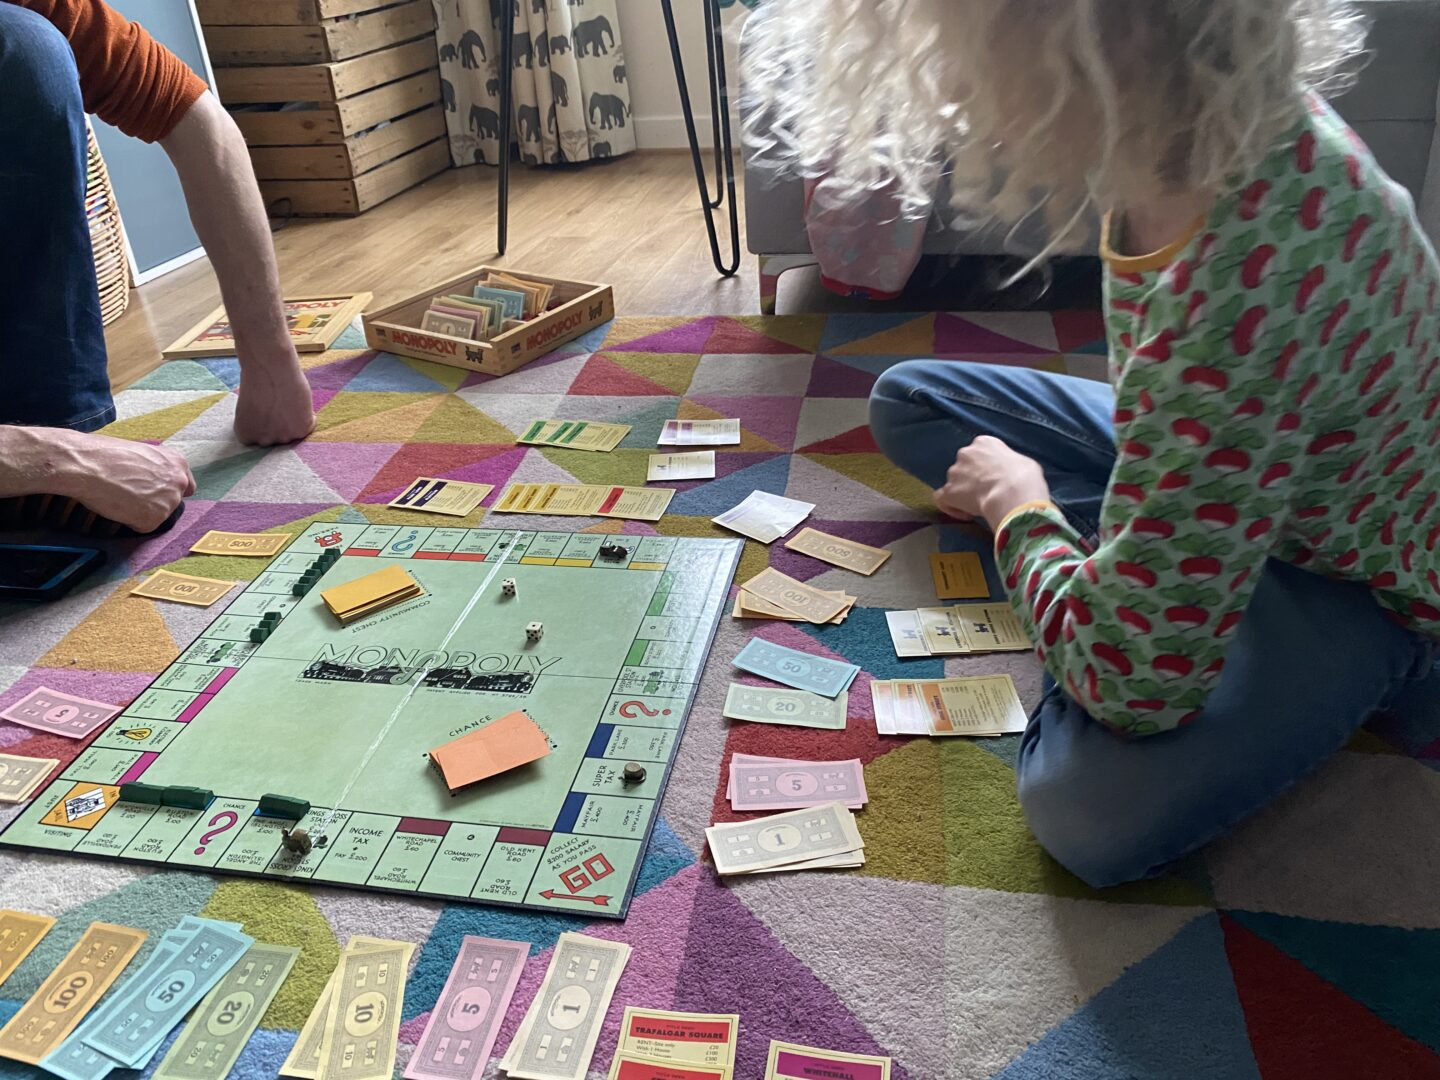 playing Monopoly on the floor